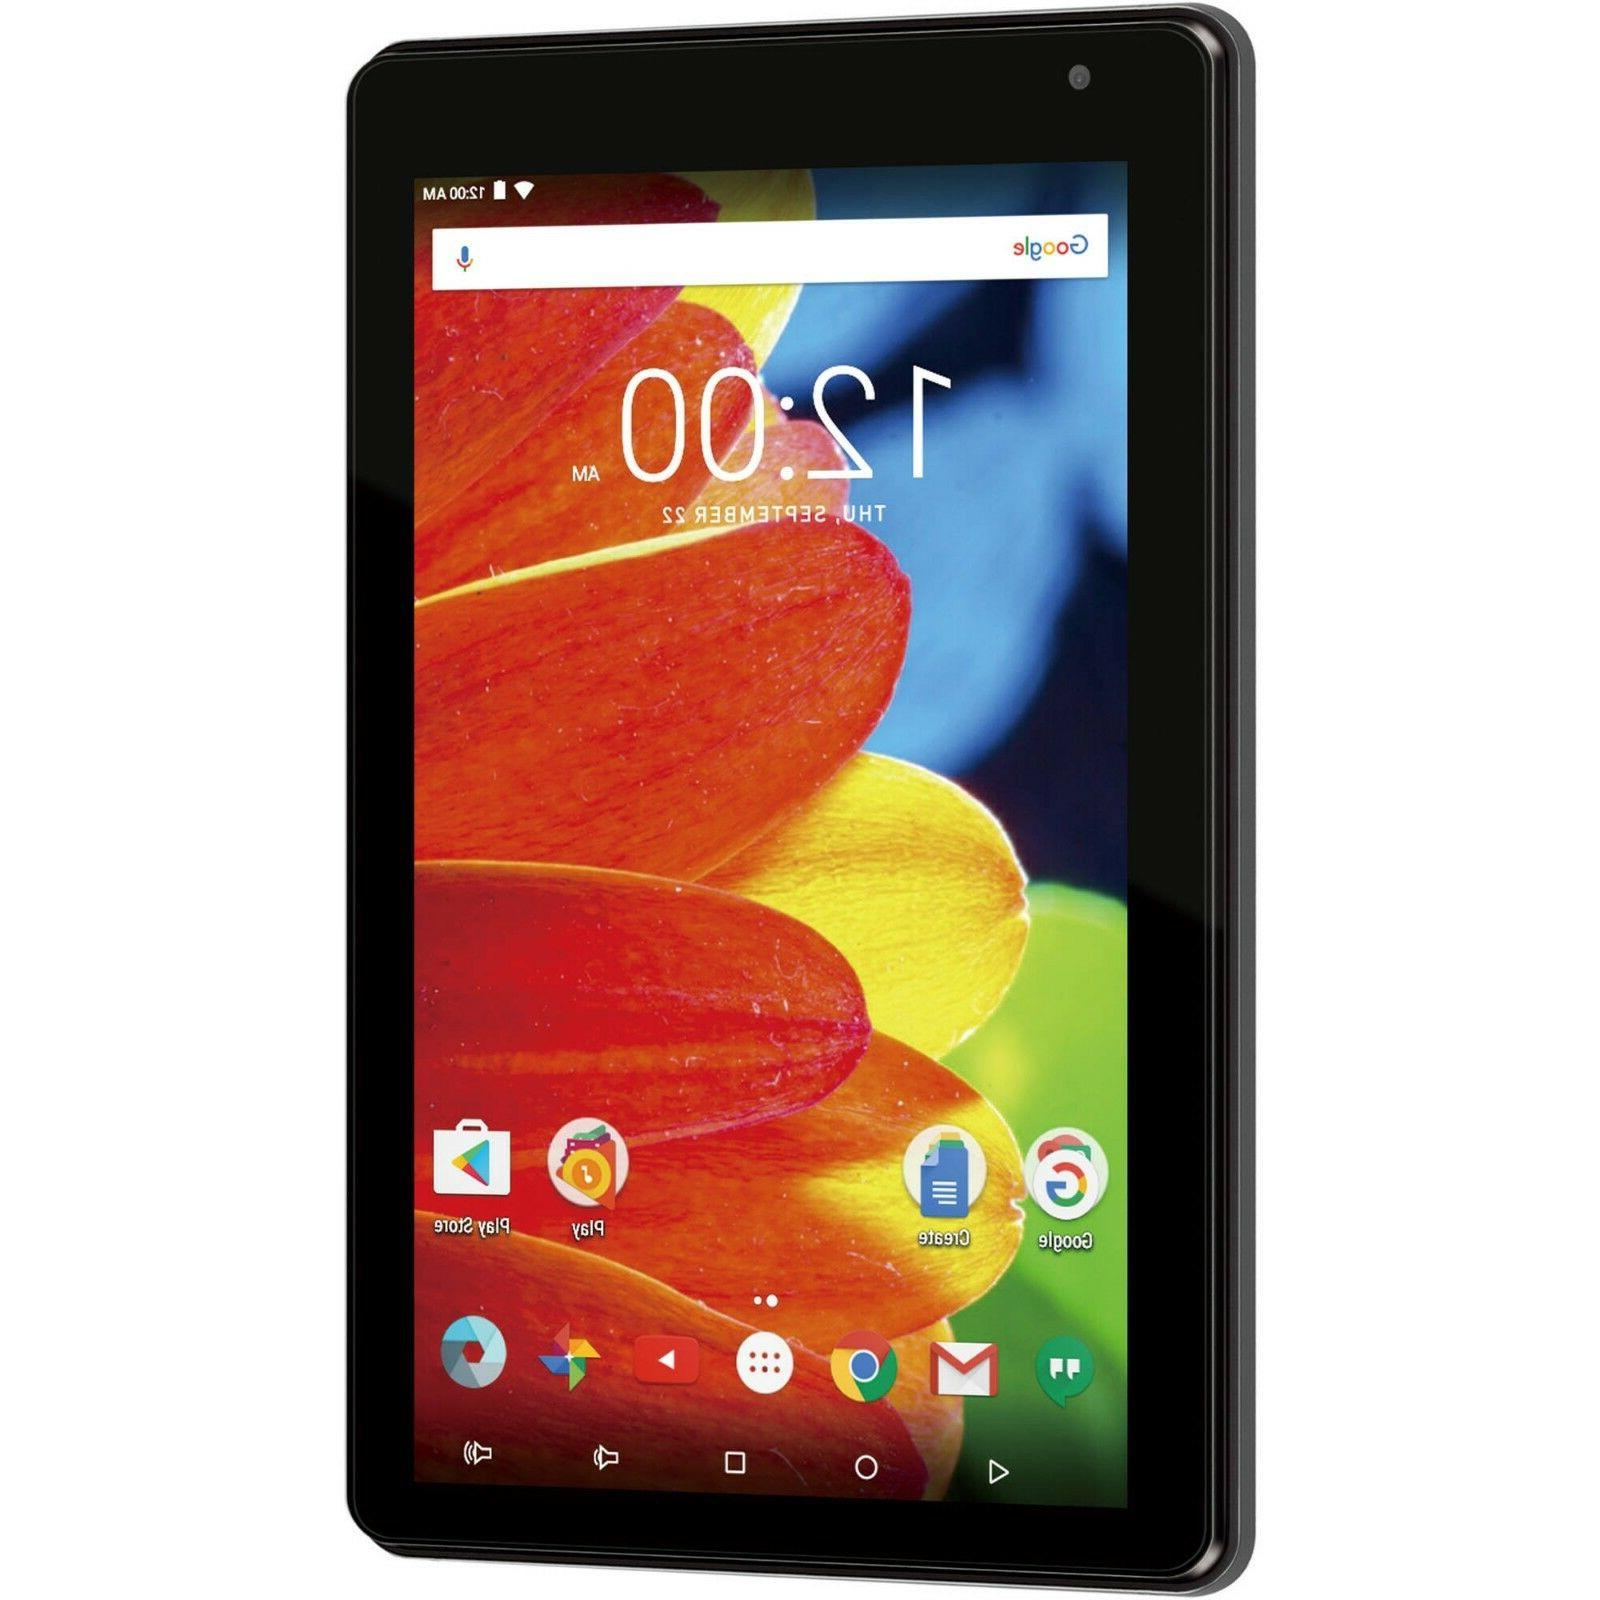 Tablet RCA 7 inch 1Gb Memory